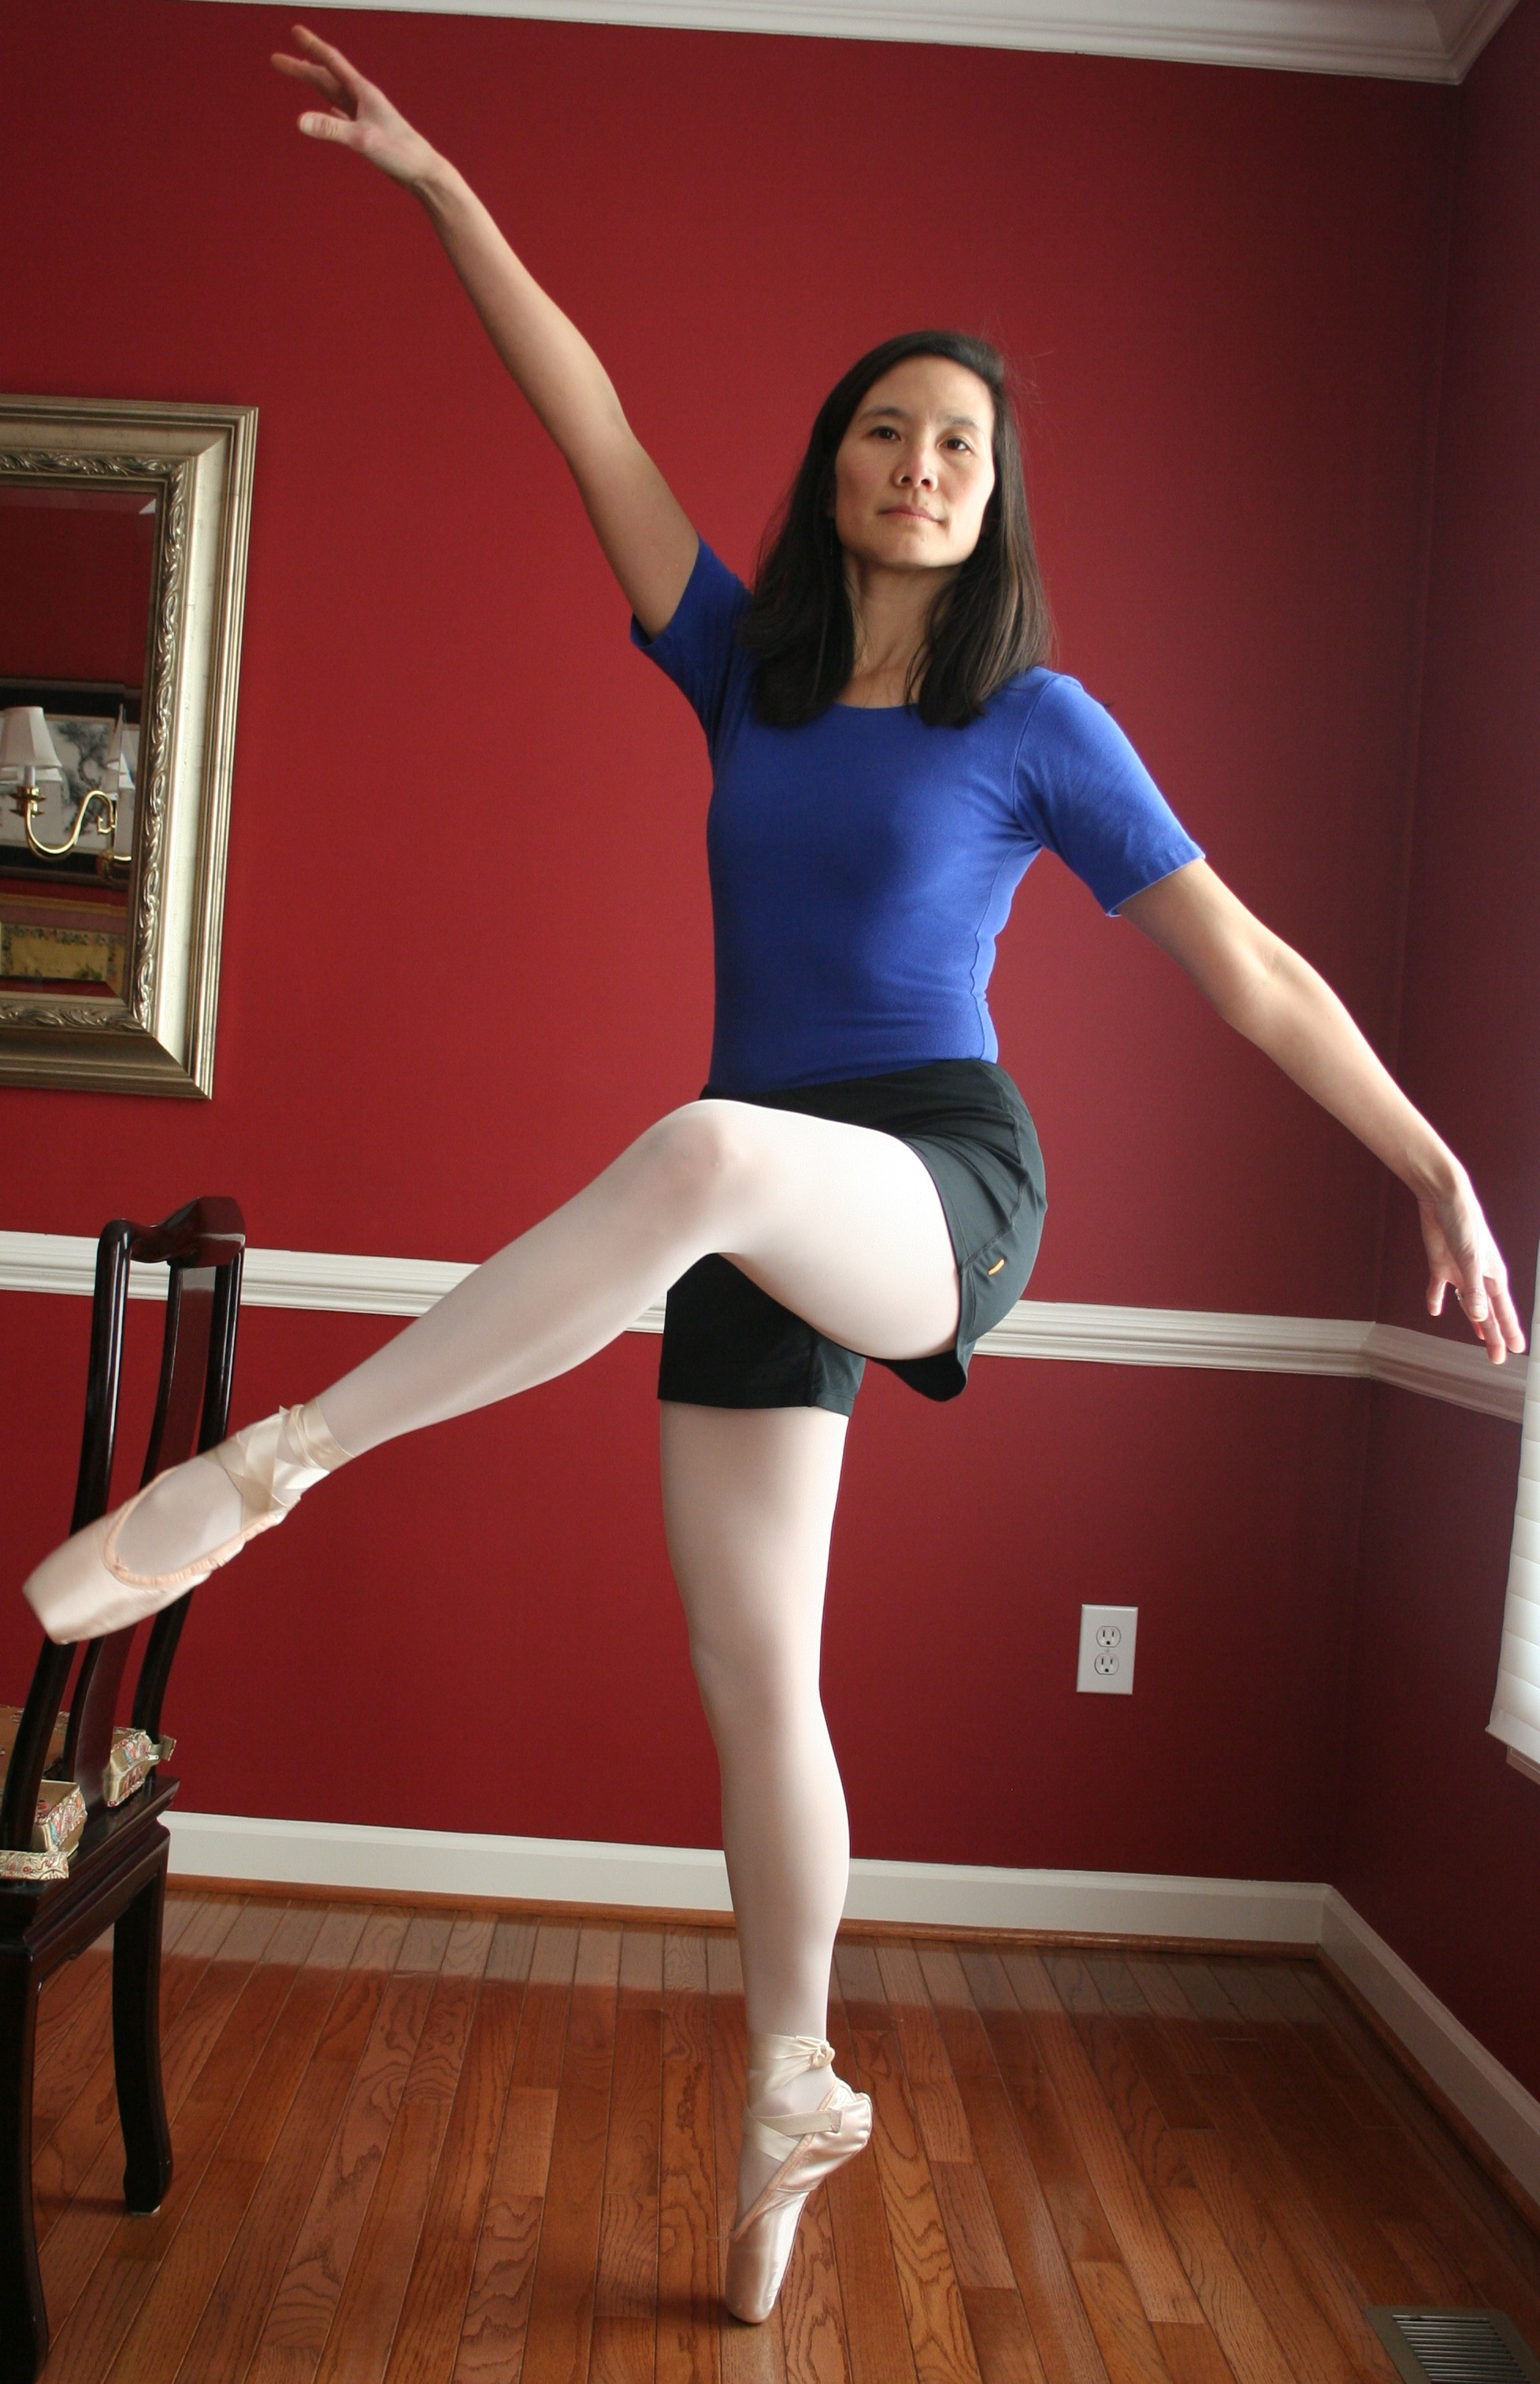 Beginning ballerina for adults